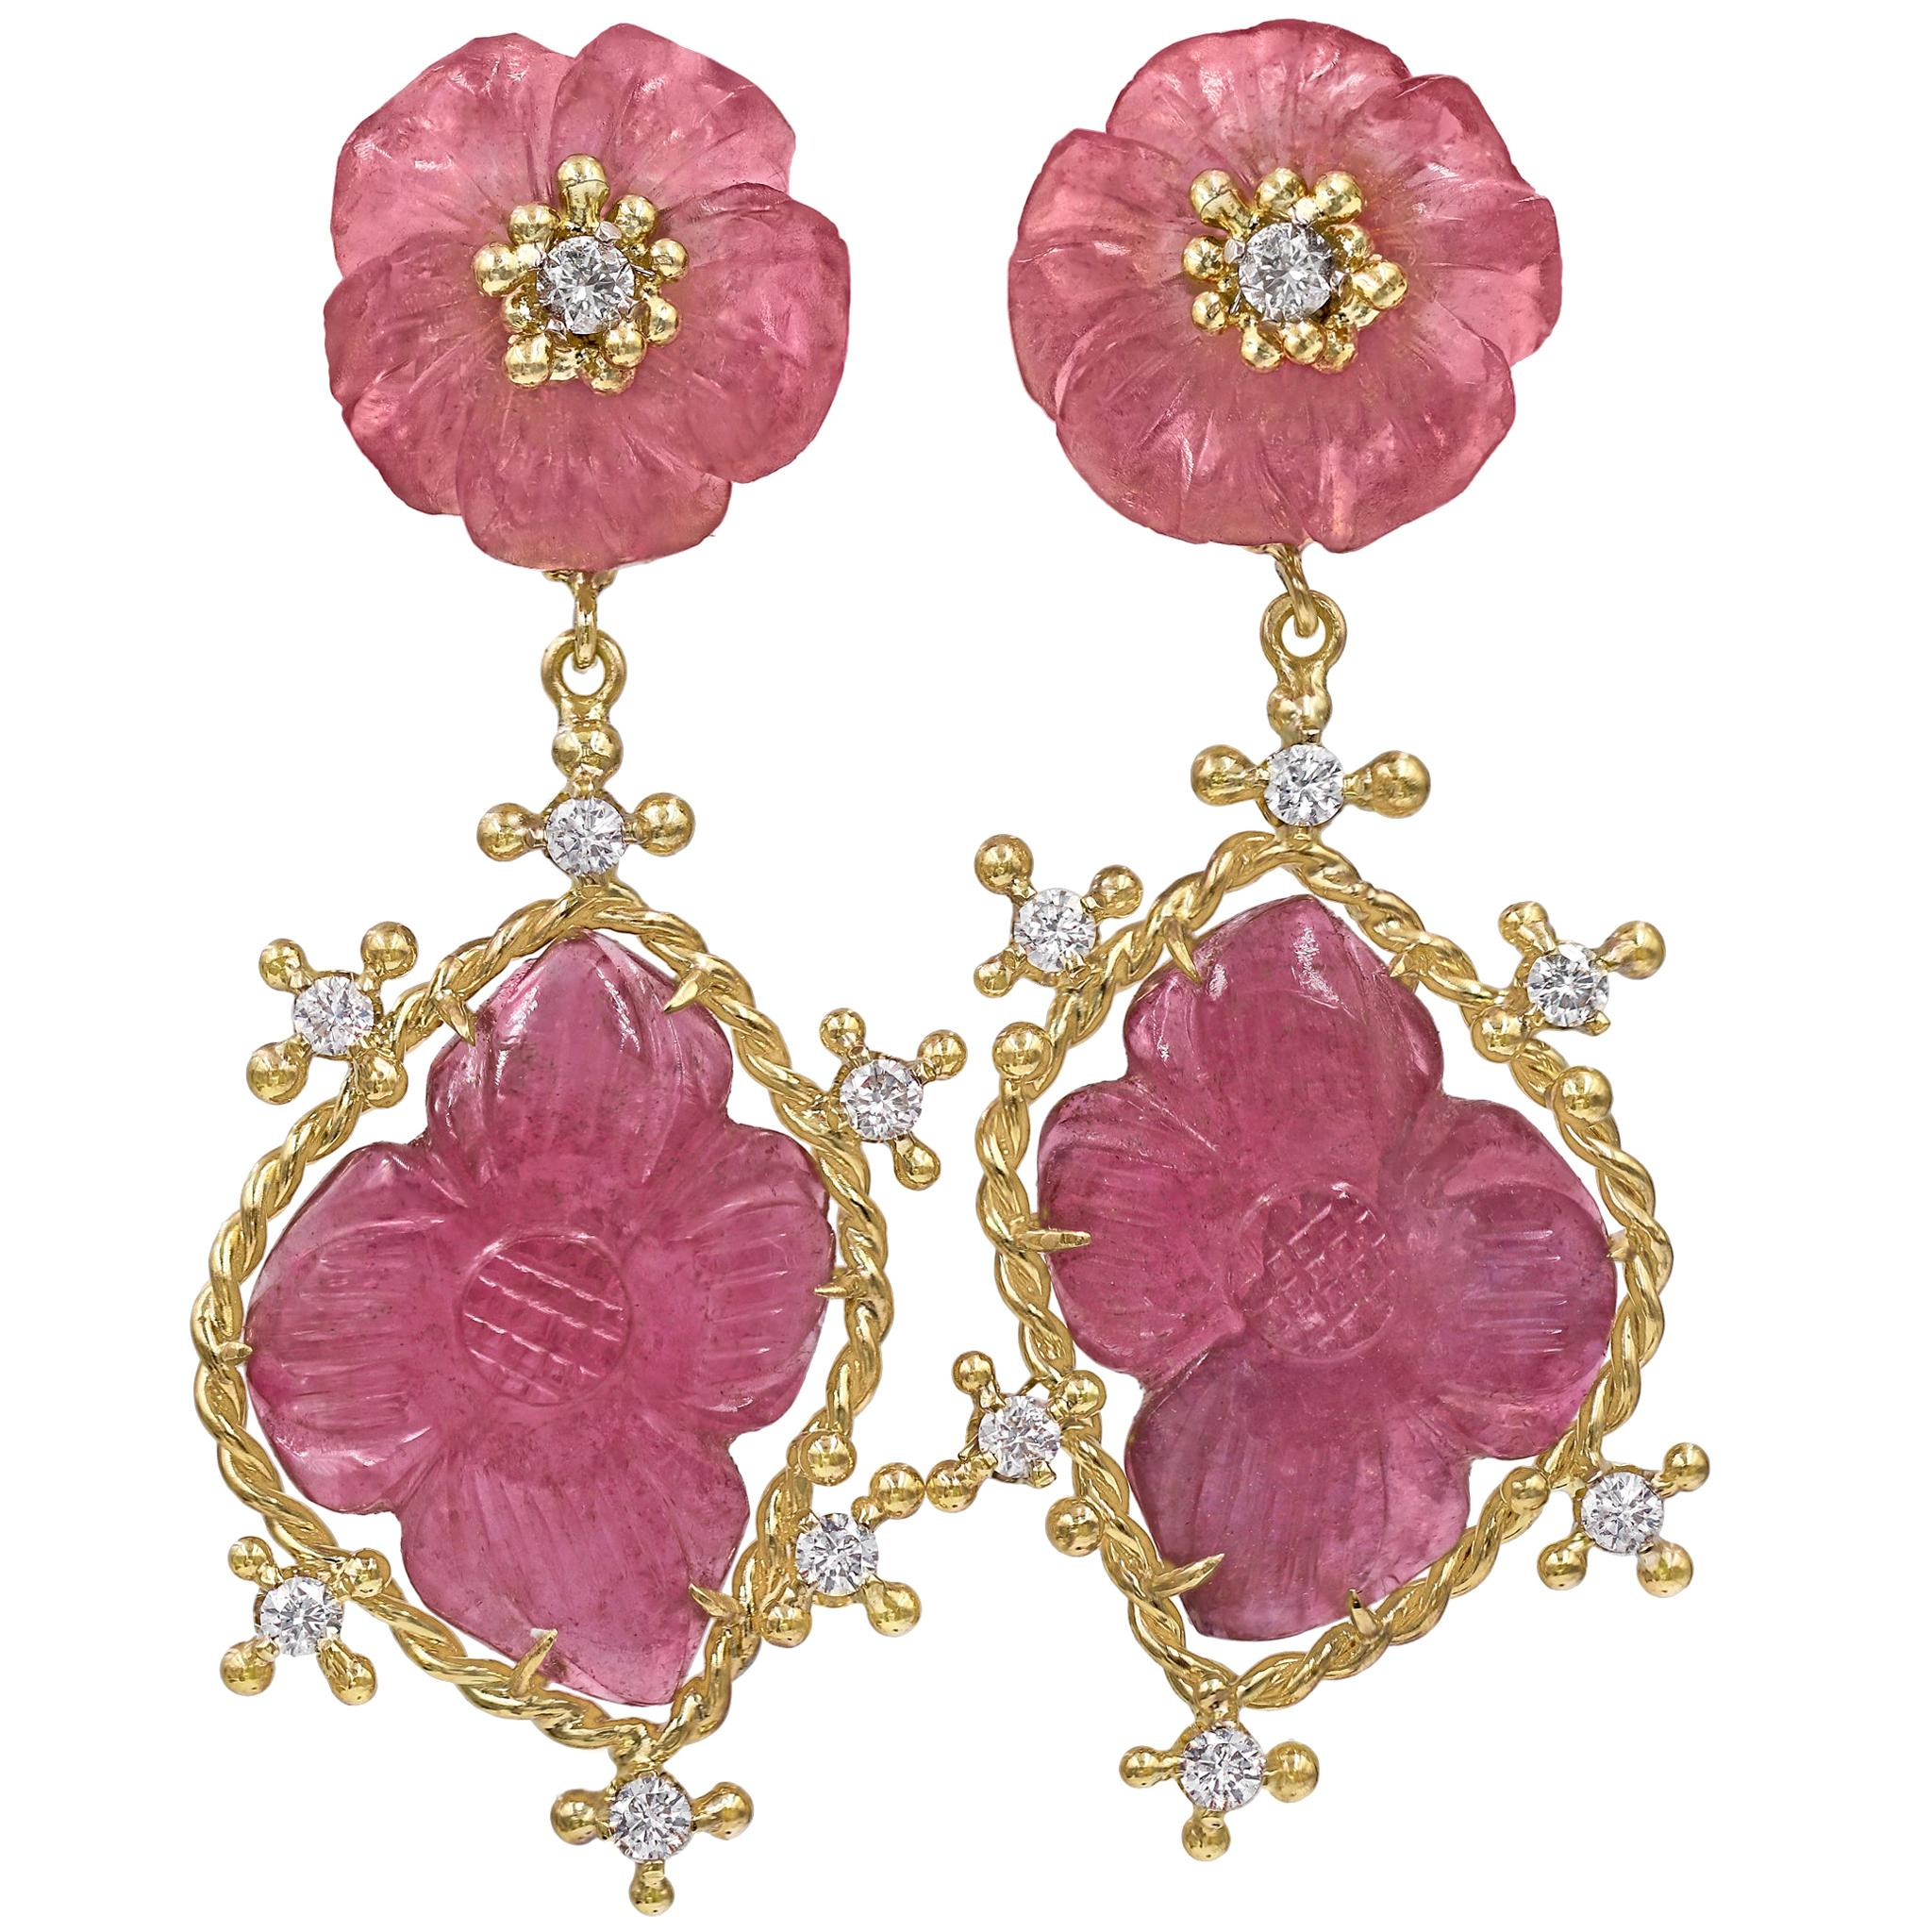 Russell Trusso Carved Pink Tourmaline White Diamond Flower Drop Earrings